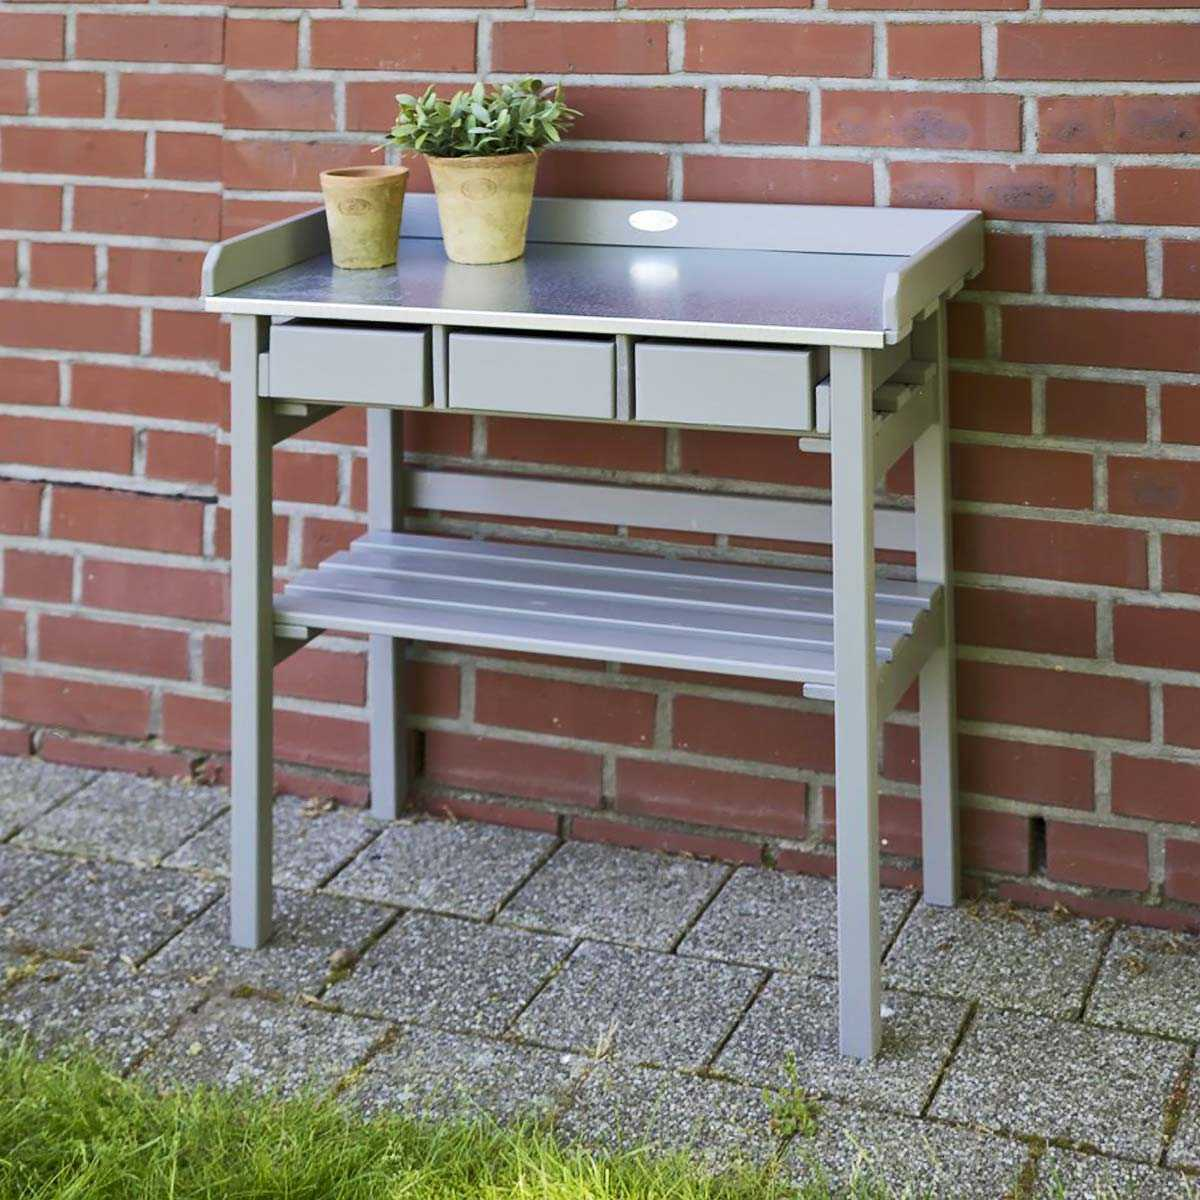 Table de rempotage bois zinc mobilier de jardin for Table en zinc de cuisine